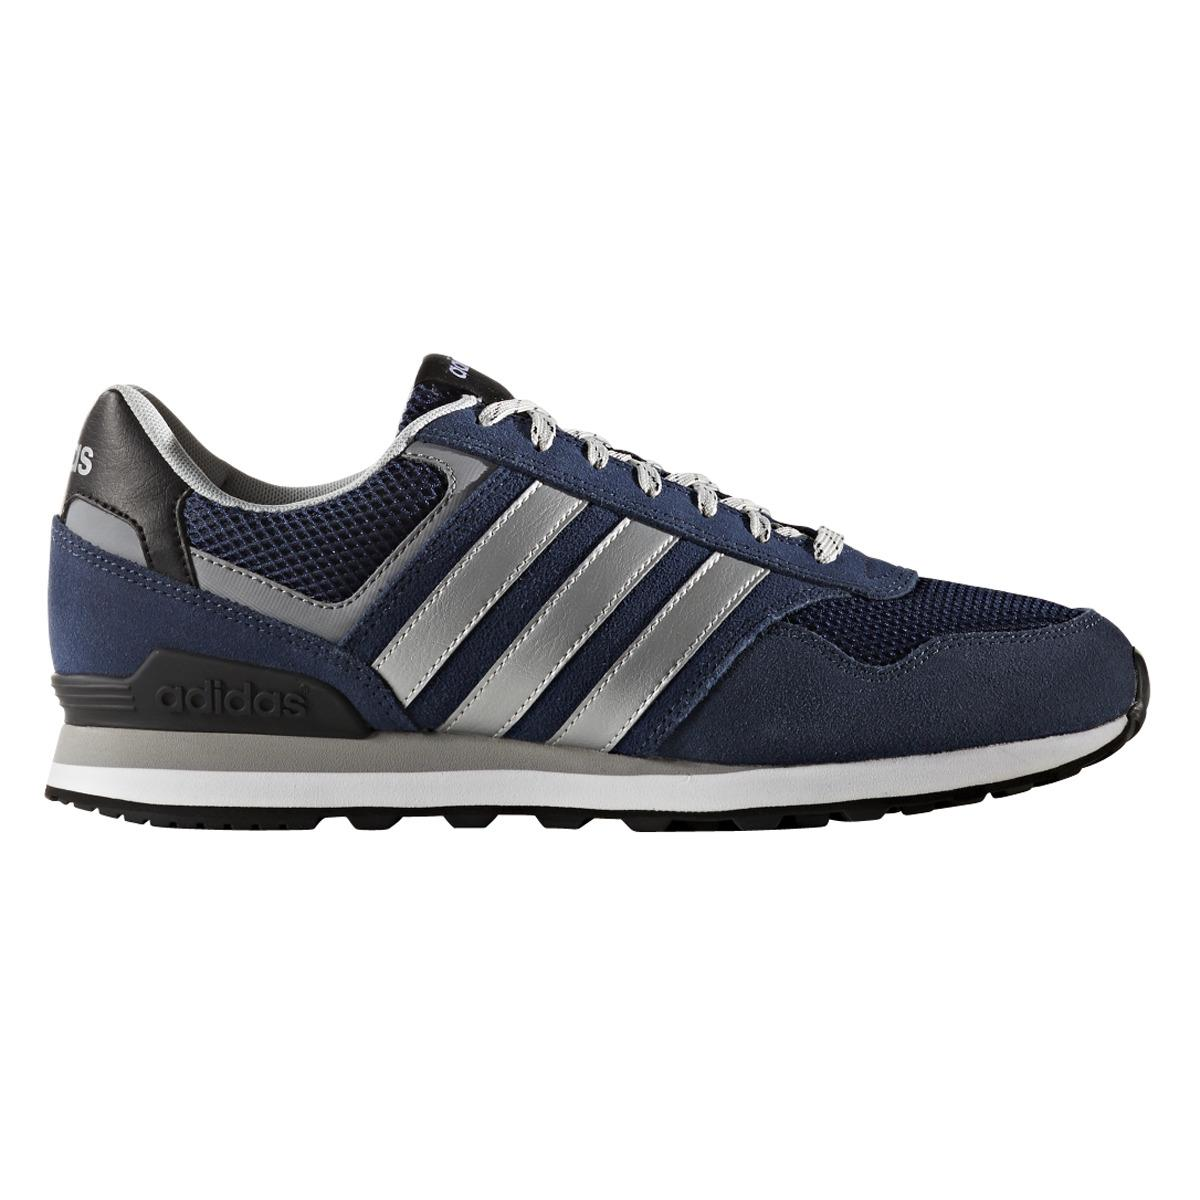 Neo Adidas: Adidas Neo 10k Casual Trainers In Black For Men